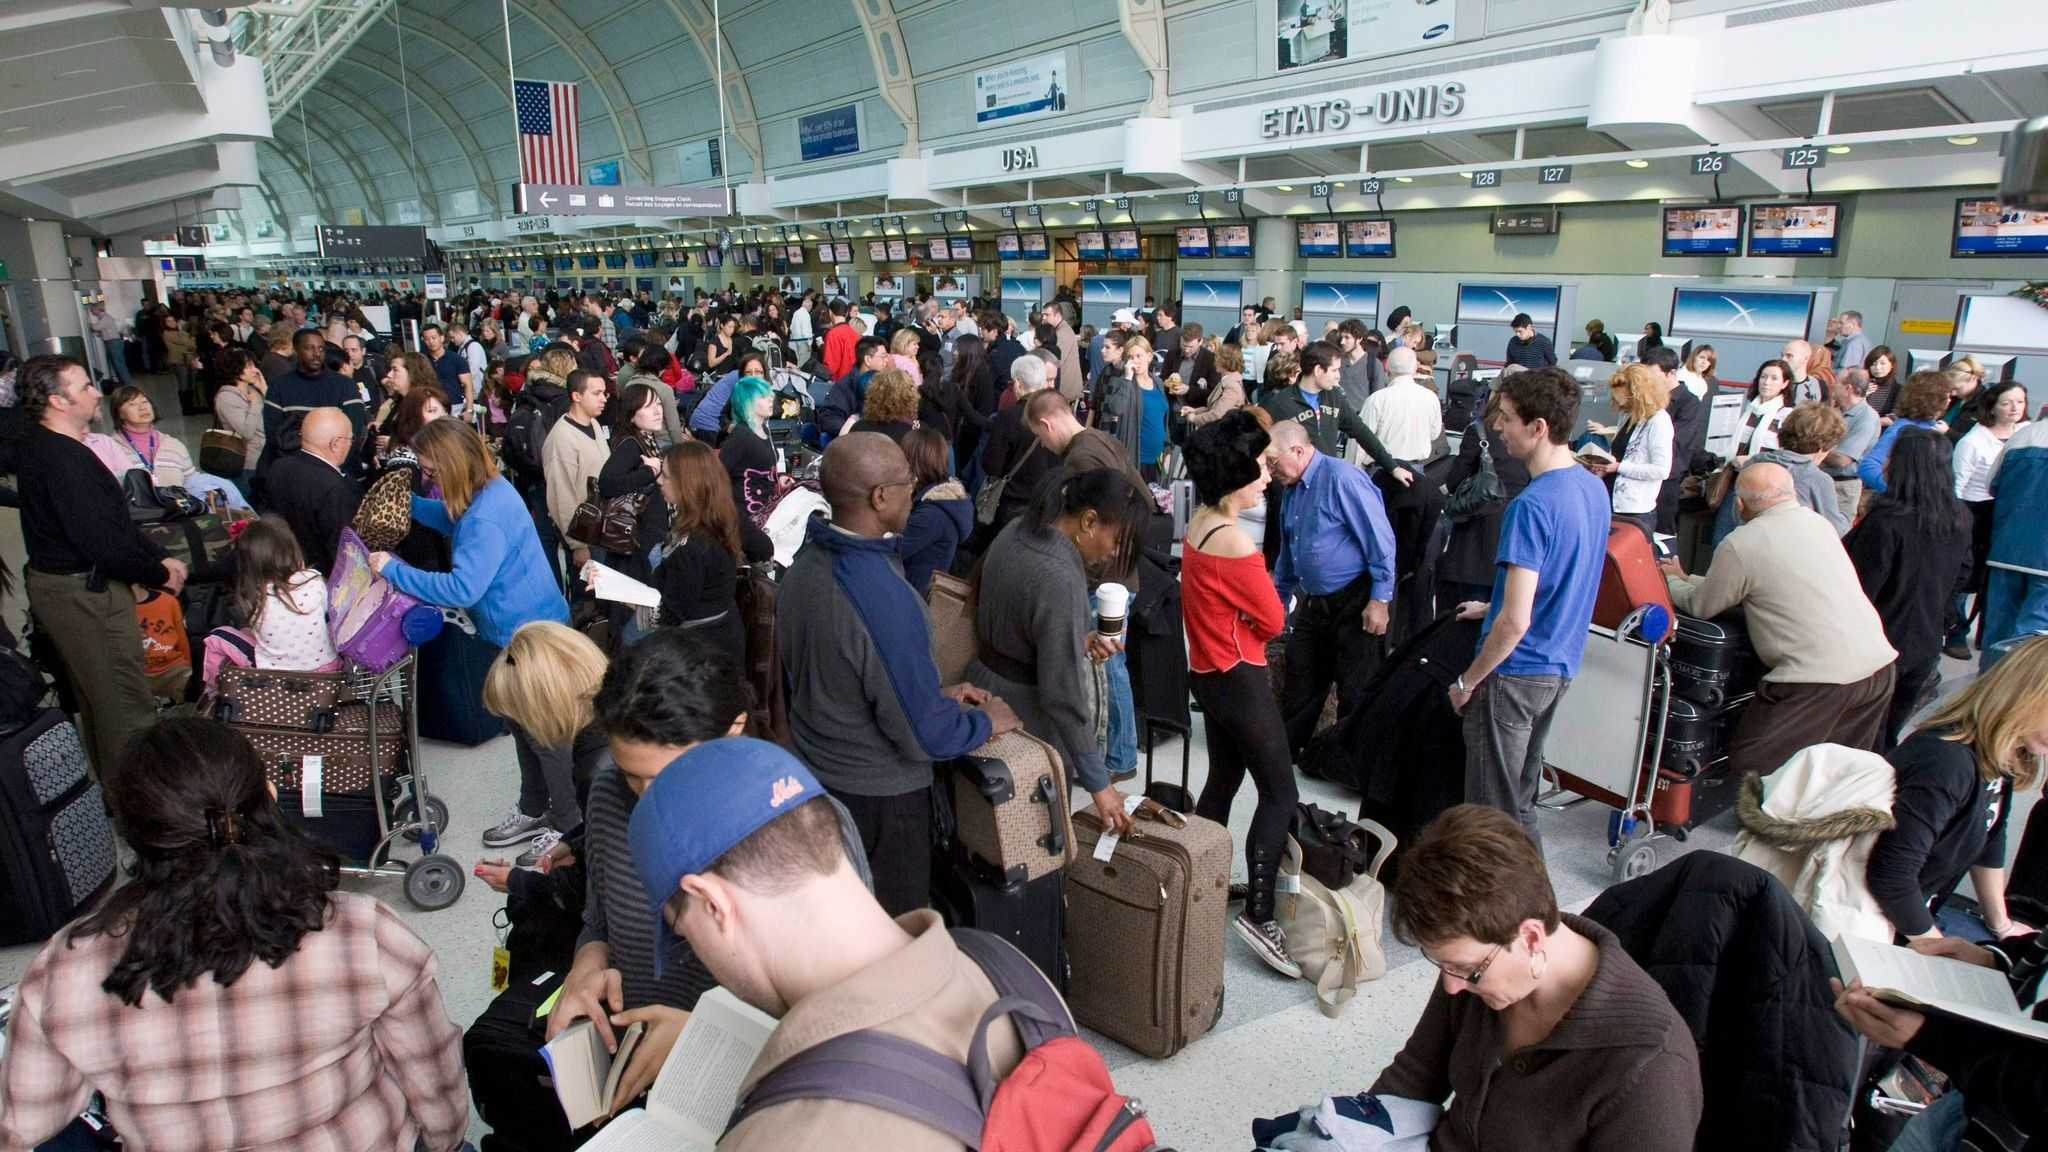 Toronto's airport is the country's busiest, more so this day in 2009 because of a security incident that slowed traffic to a crawl.